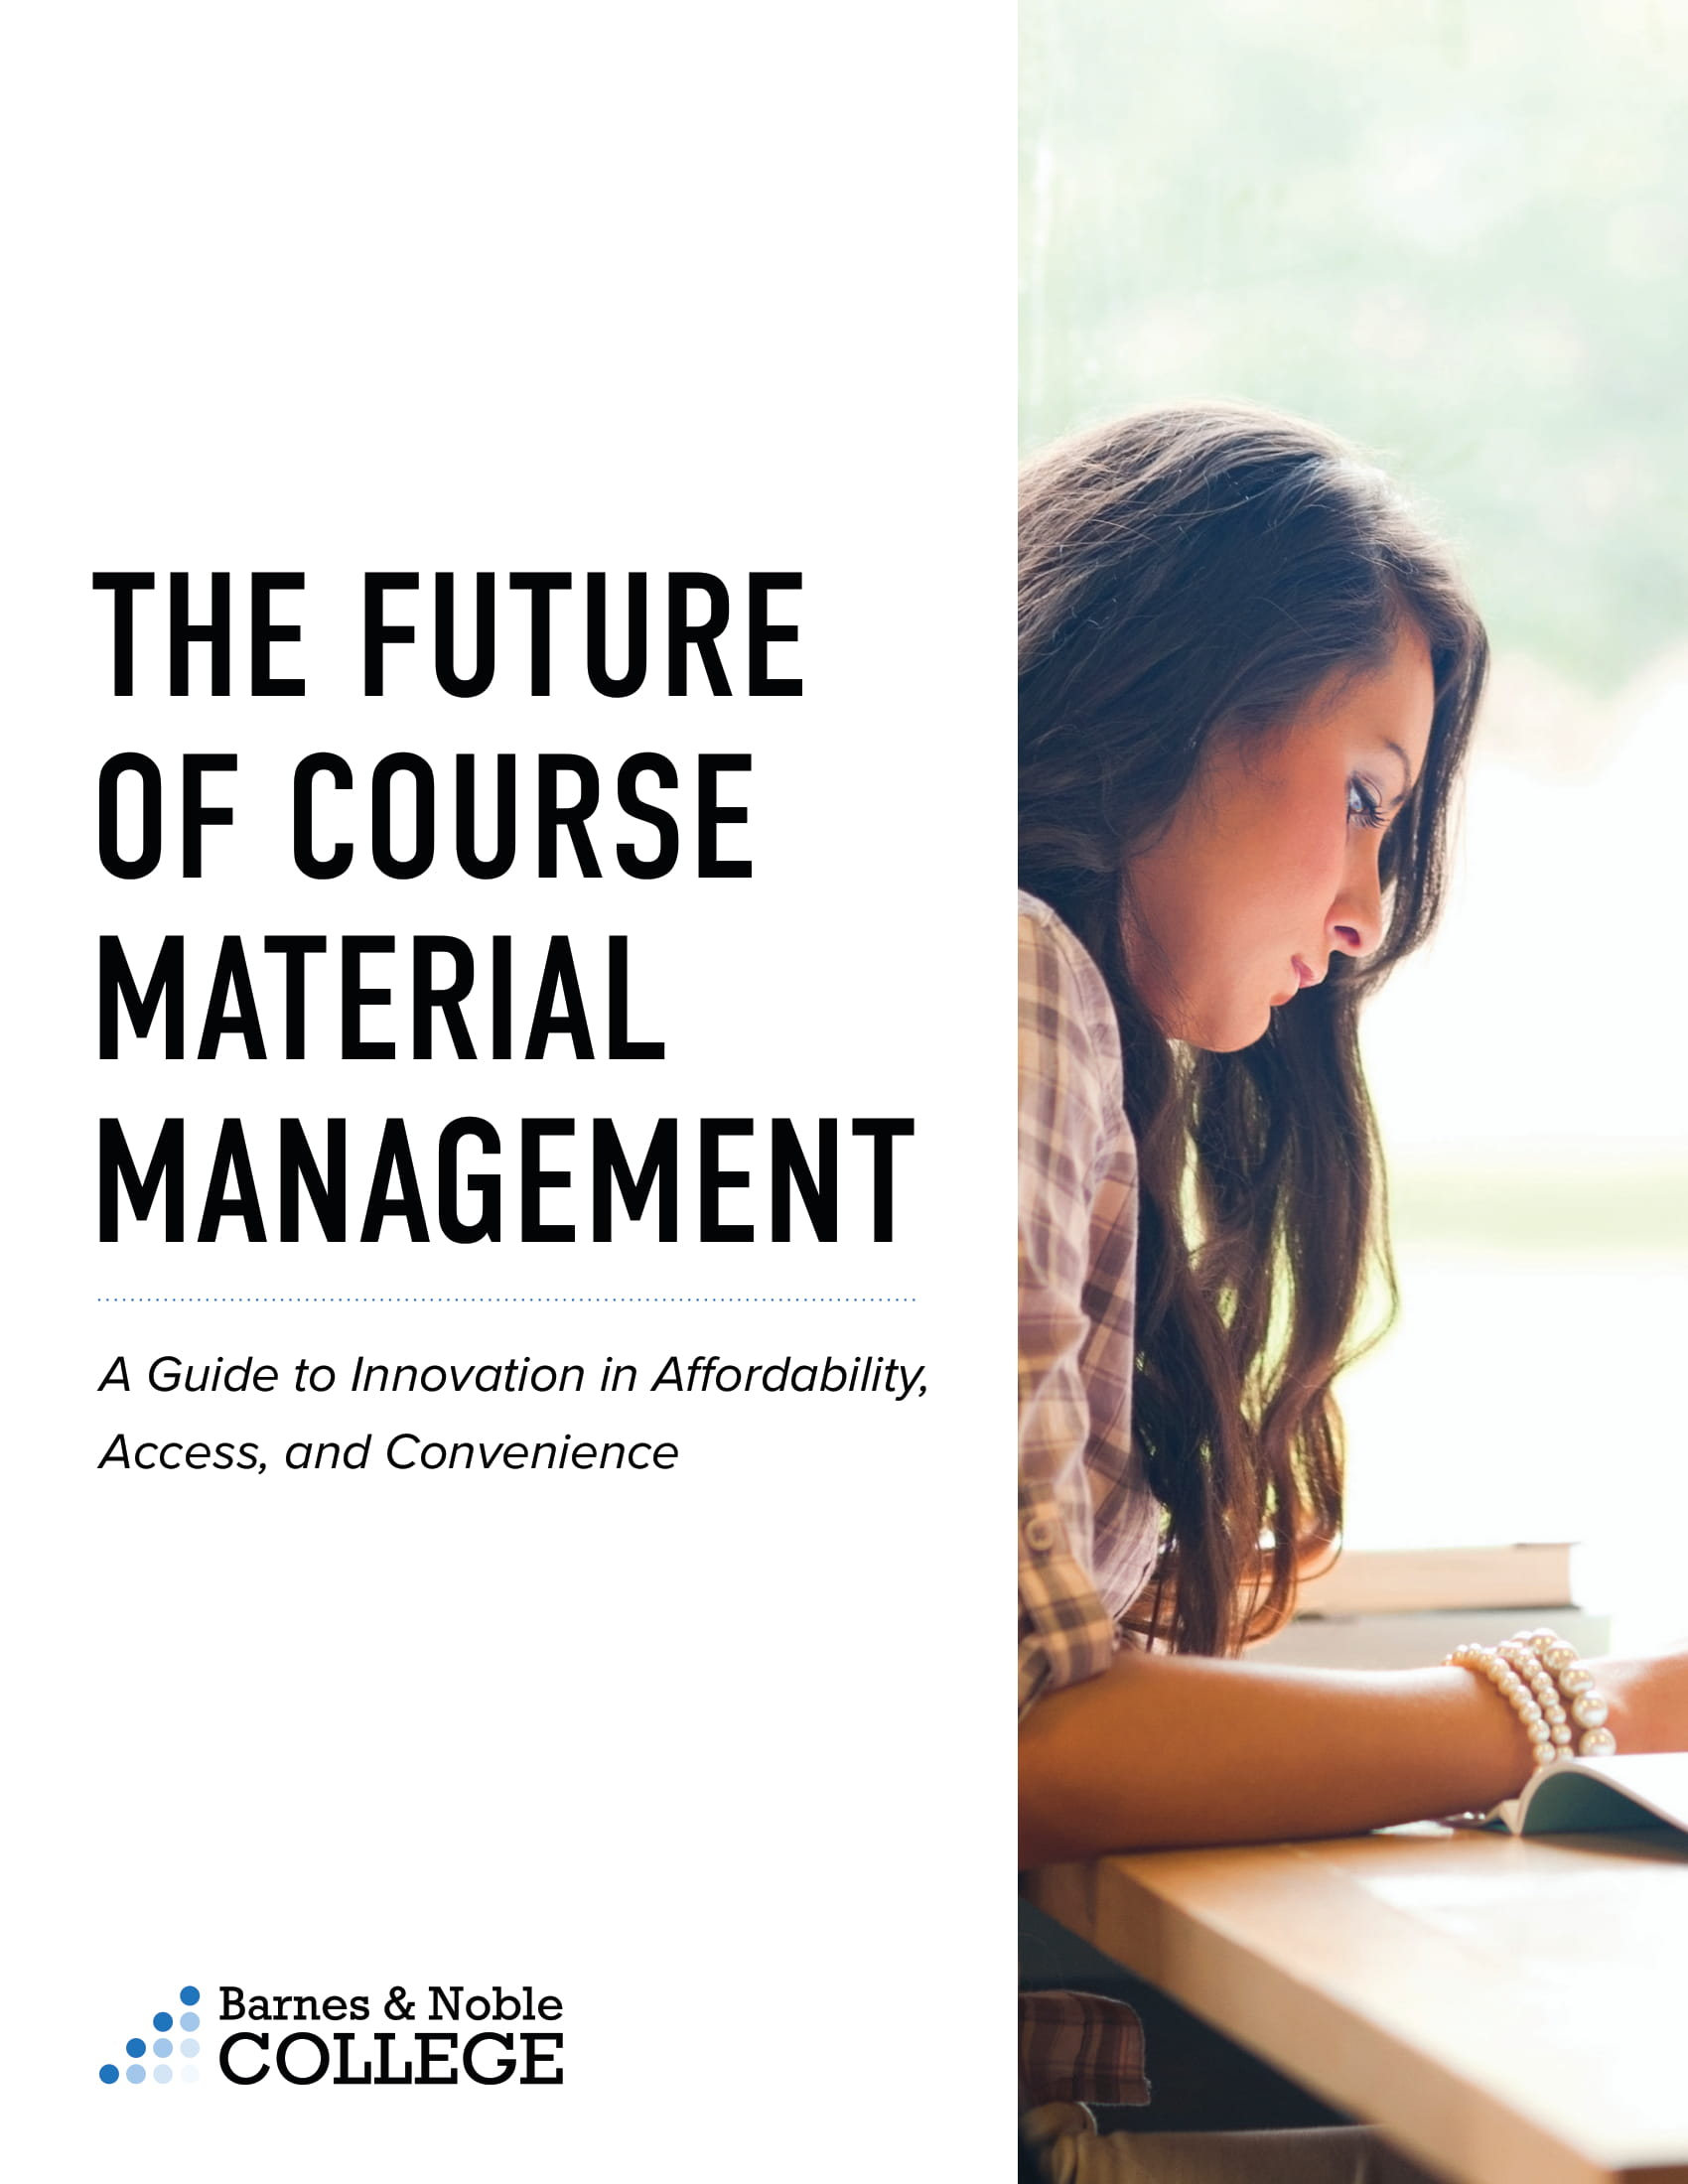 The Future of Course Material Management